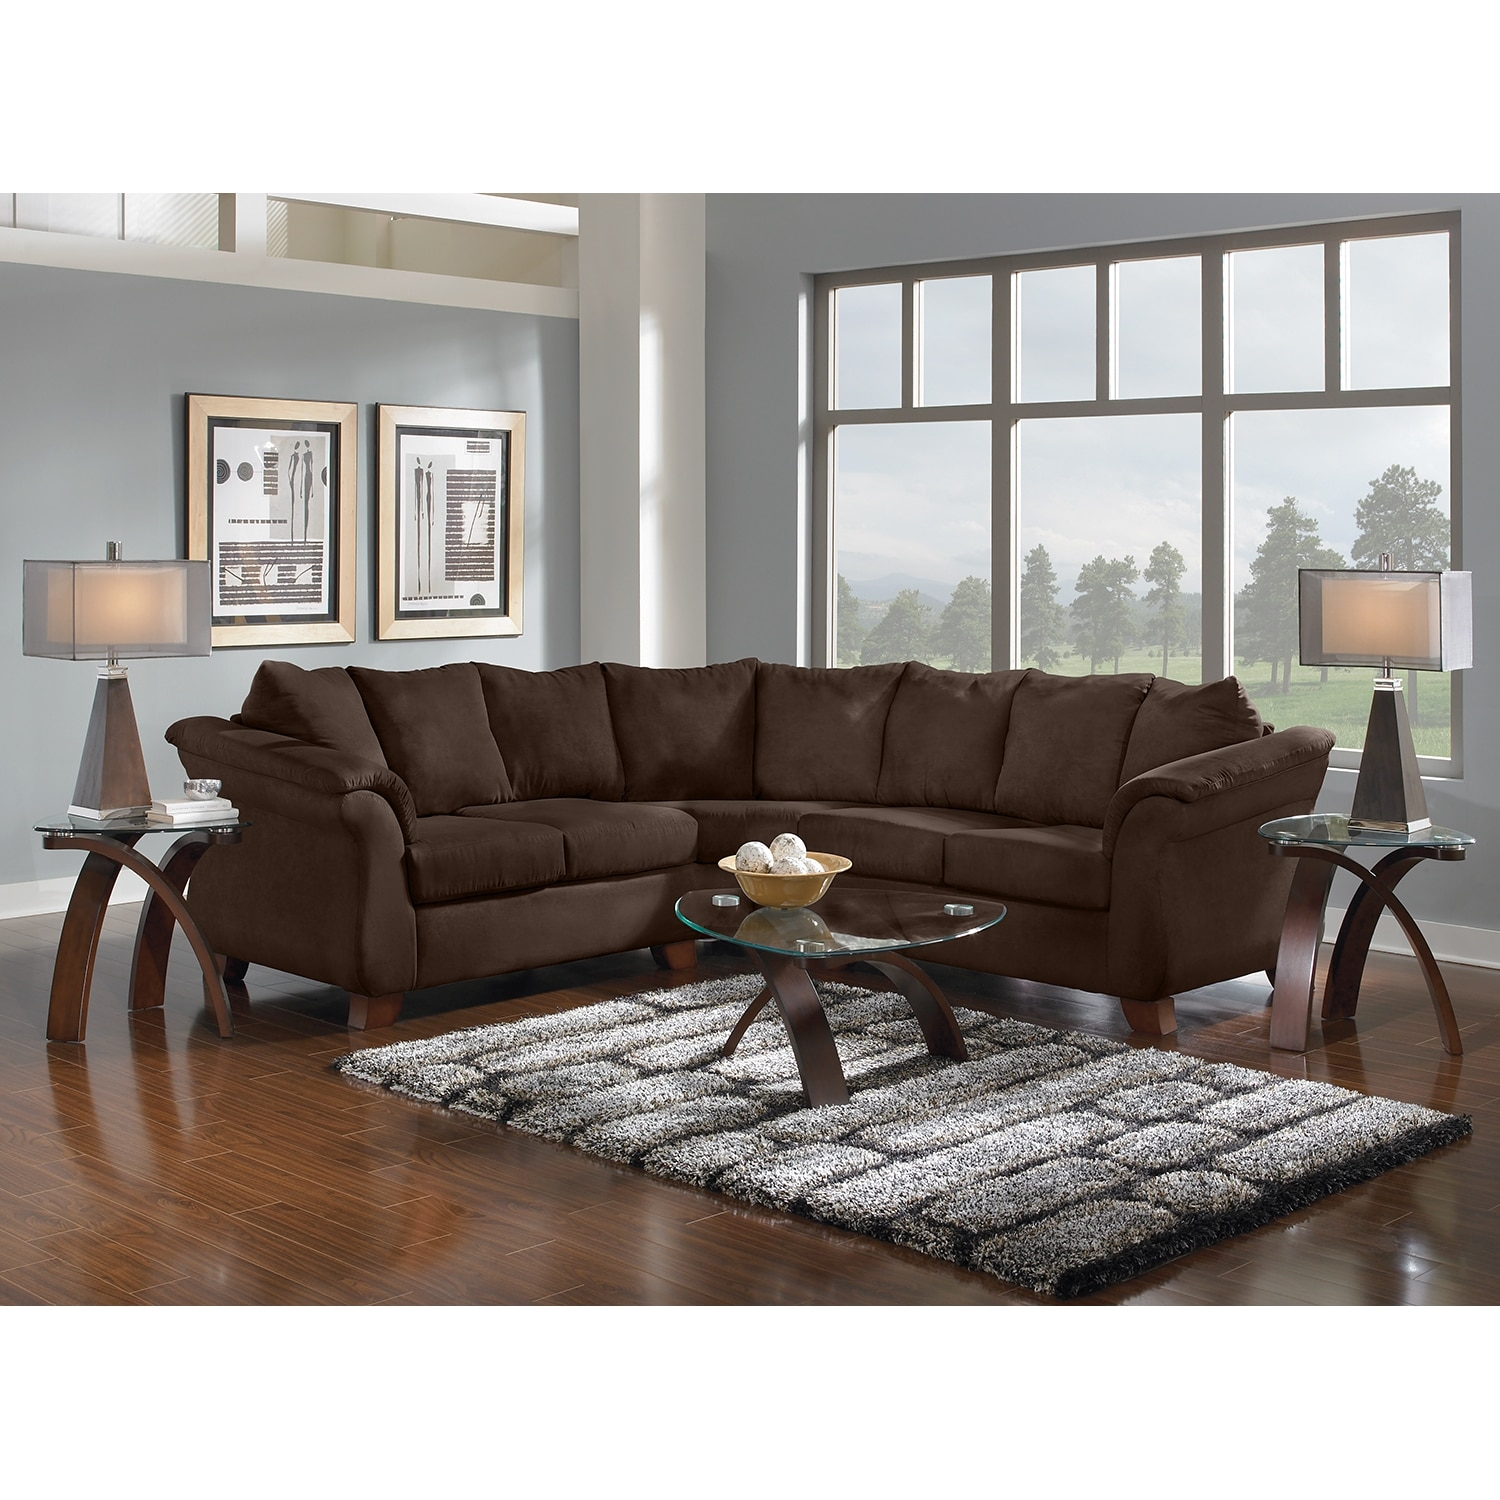 Adrian 2 Piece Sectional Chocolate